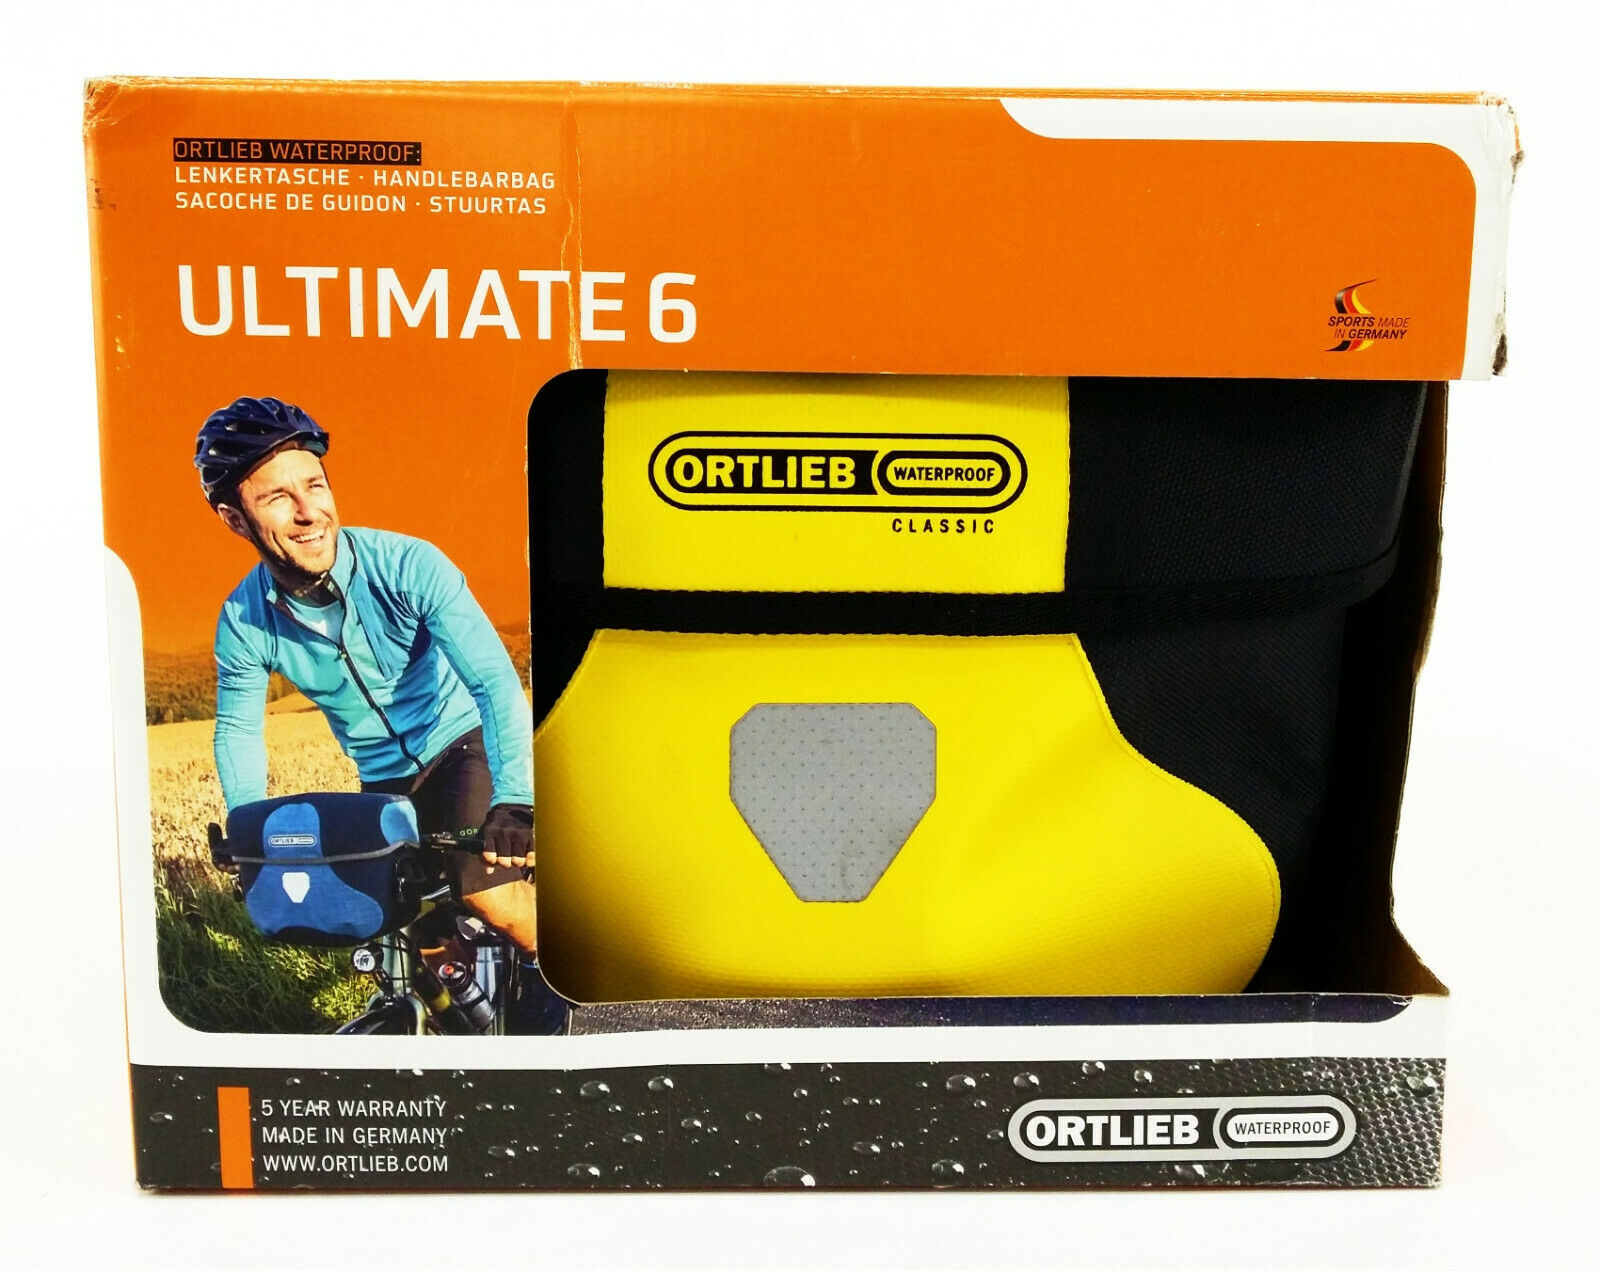 Ortlieb Ultimate 6 M Classic Waterproof Bicycle Handlebar Bag, Yellow